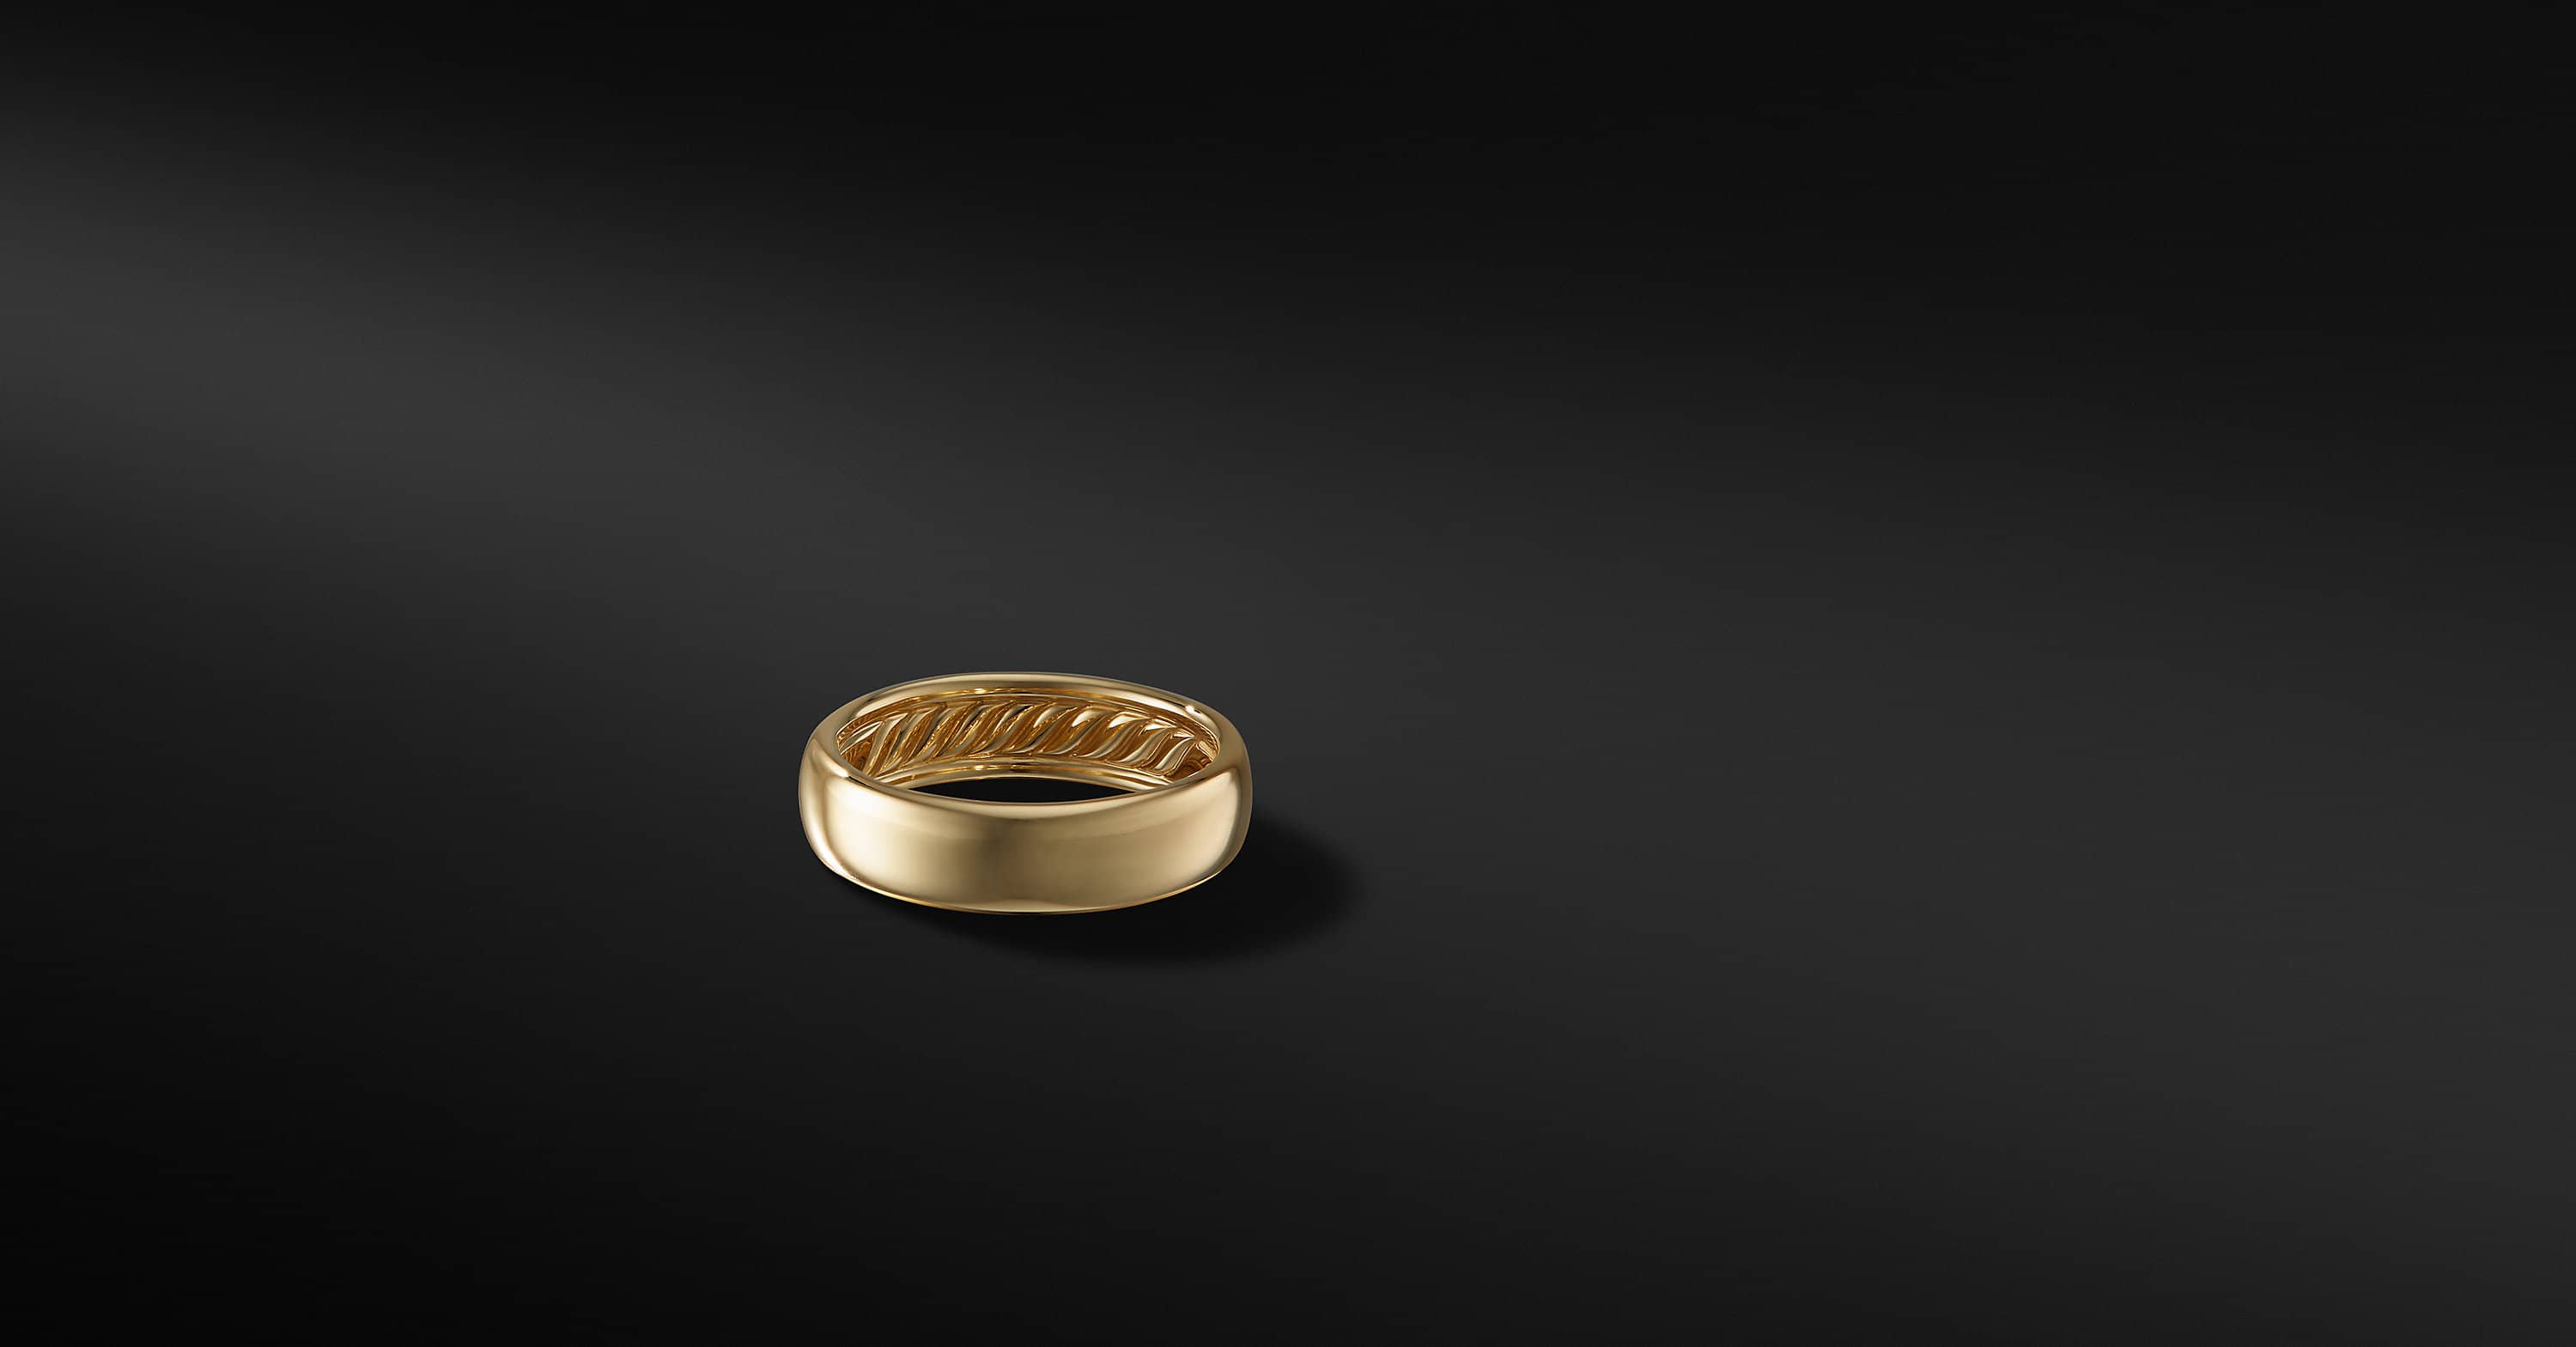 DY Classic Band in 18K Gold, 6mm